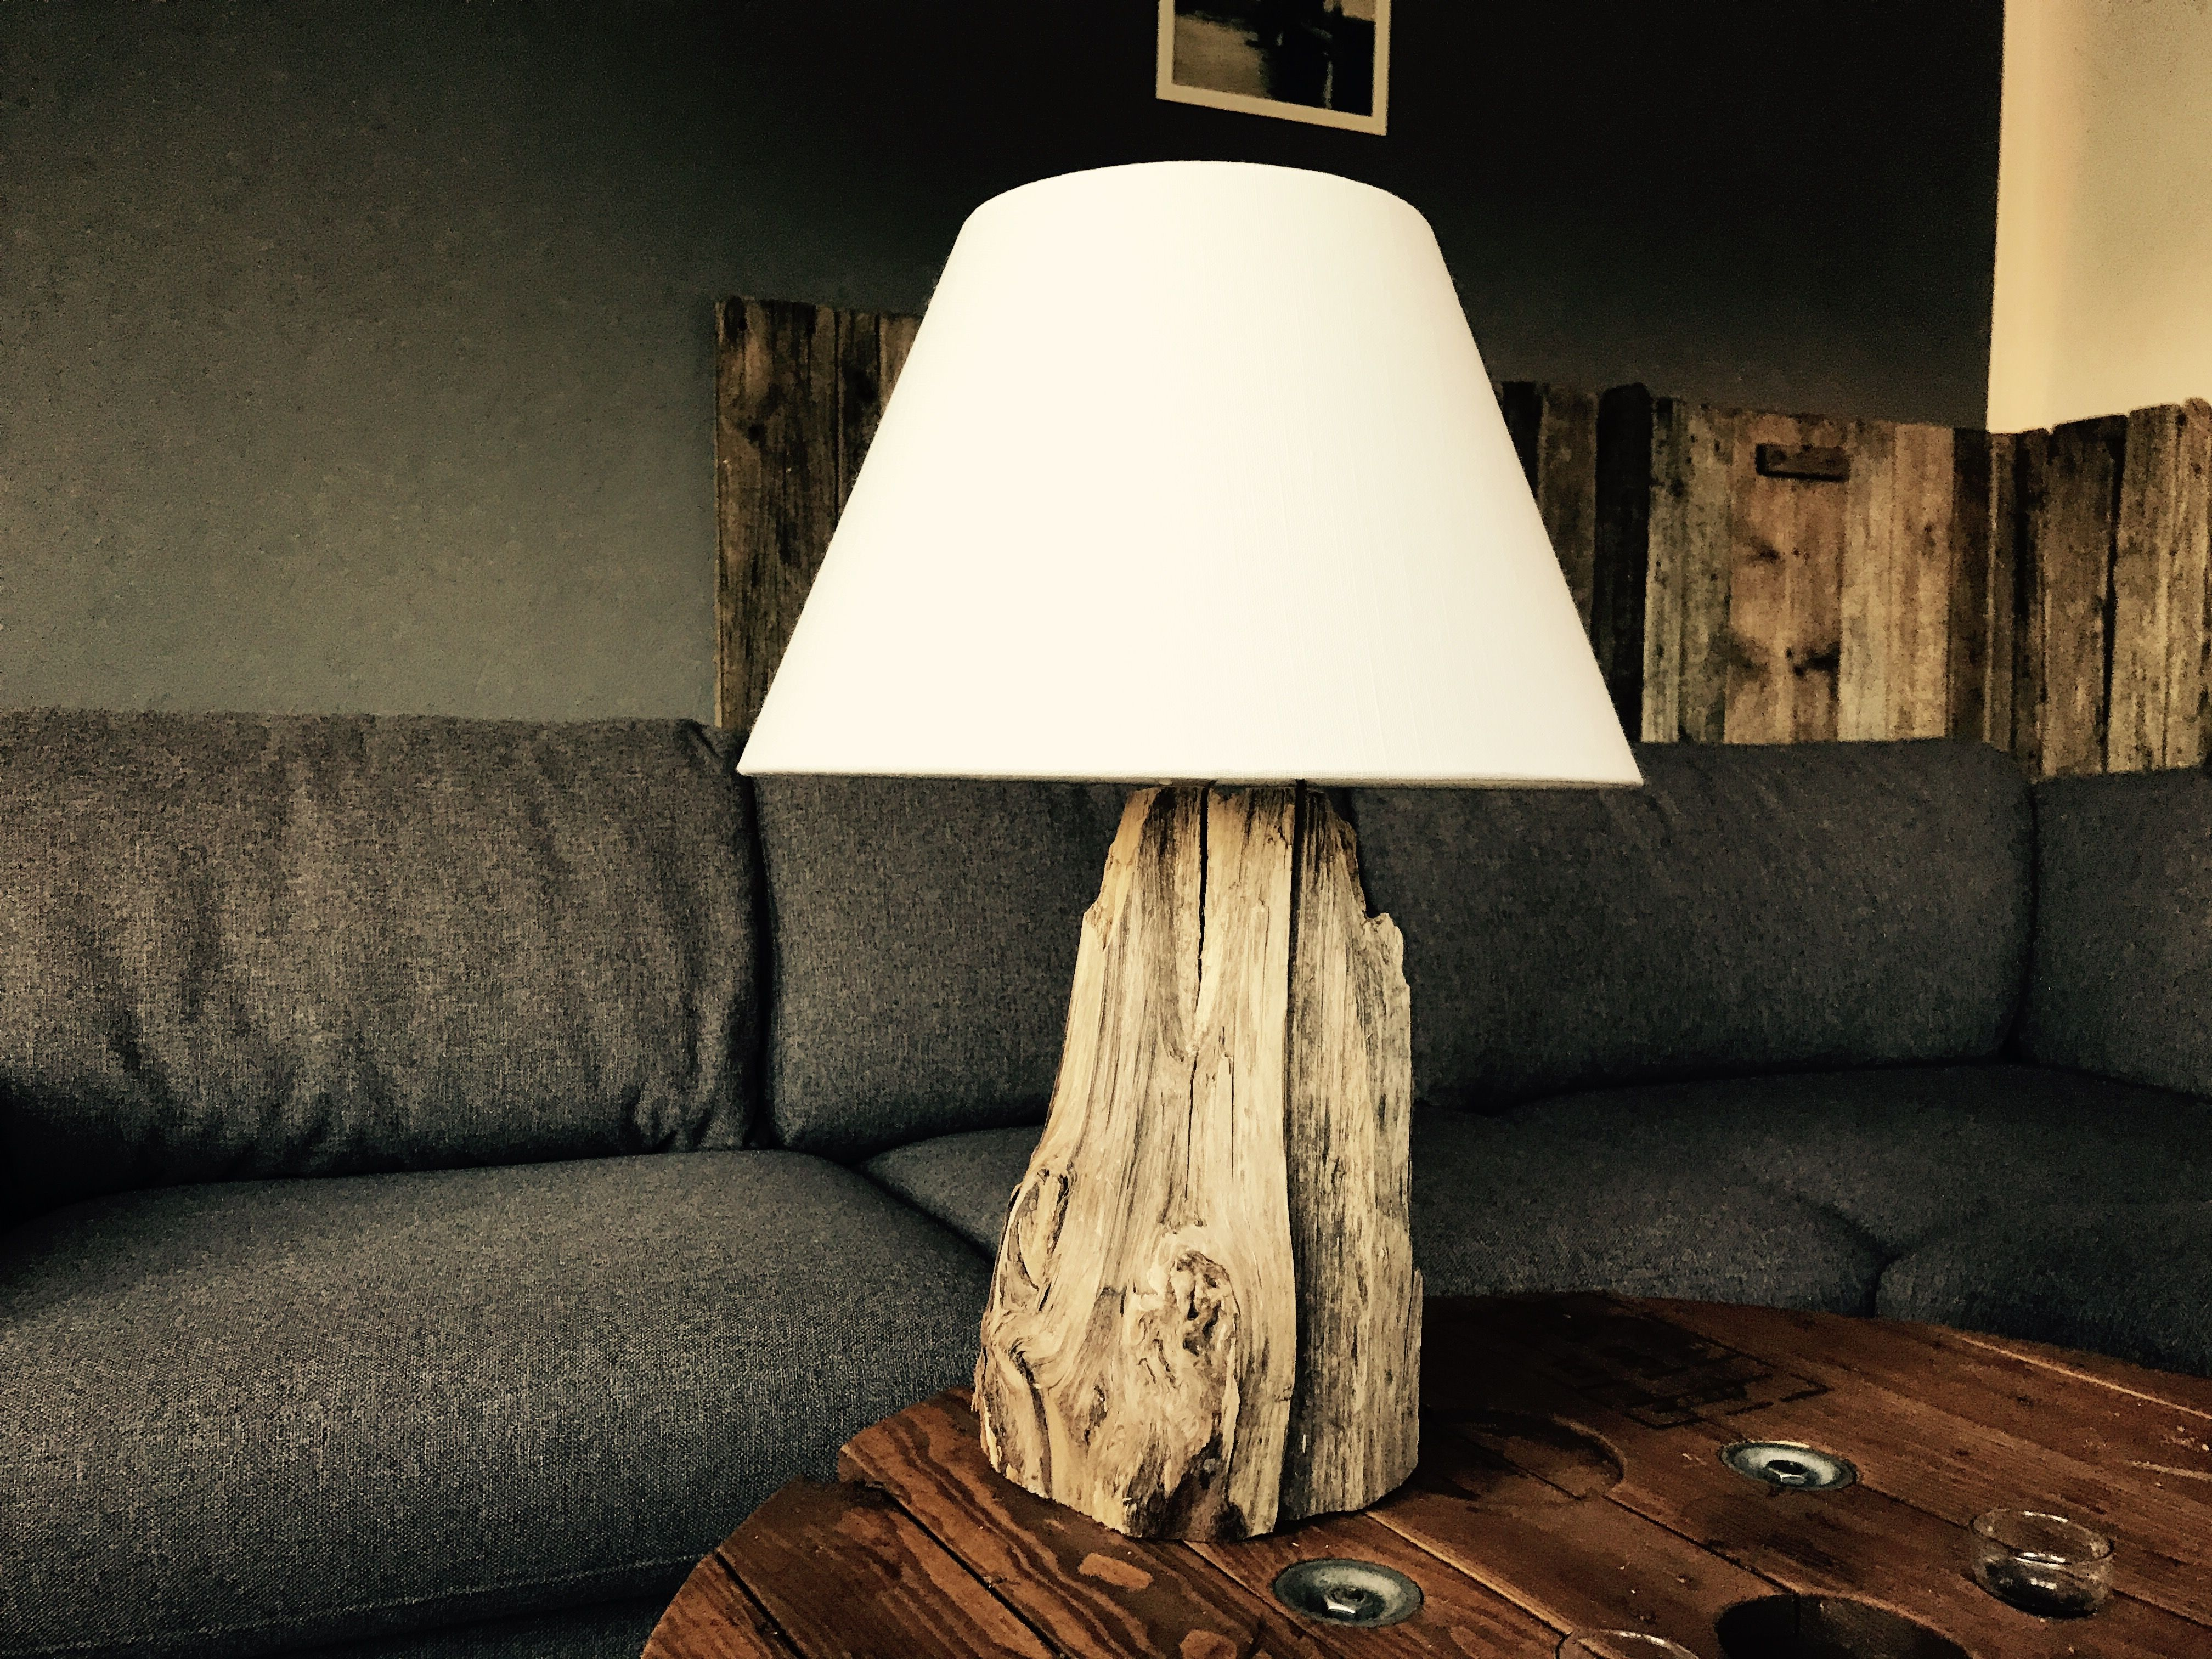 diy schwemmholz lampe tischlampe treibholz schwemmholz driftwood pinterest schwemmholz. Black Bedroom Furniture Sets. Home Design Ideas